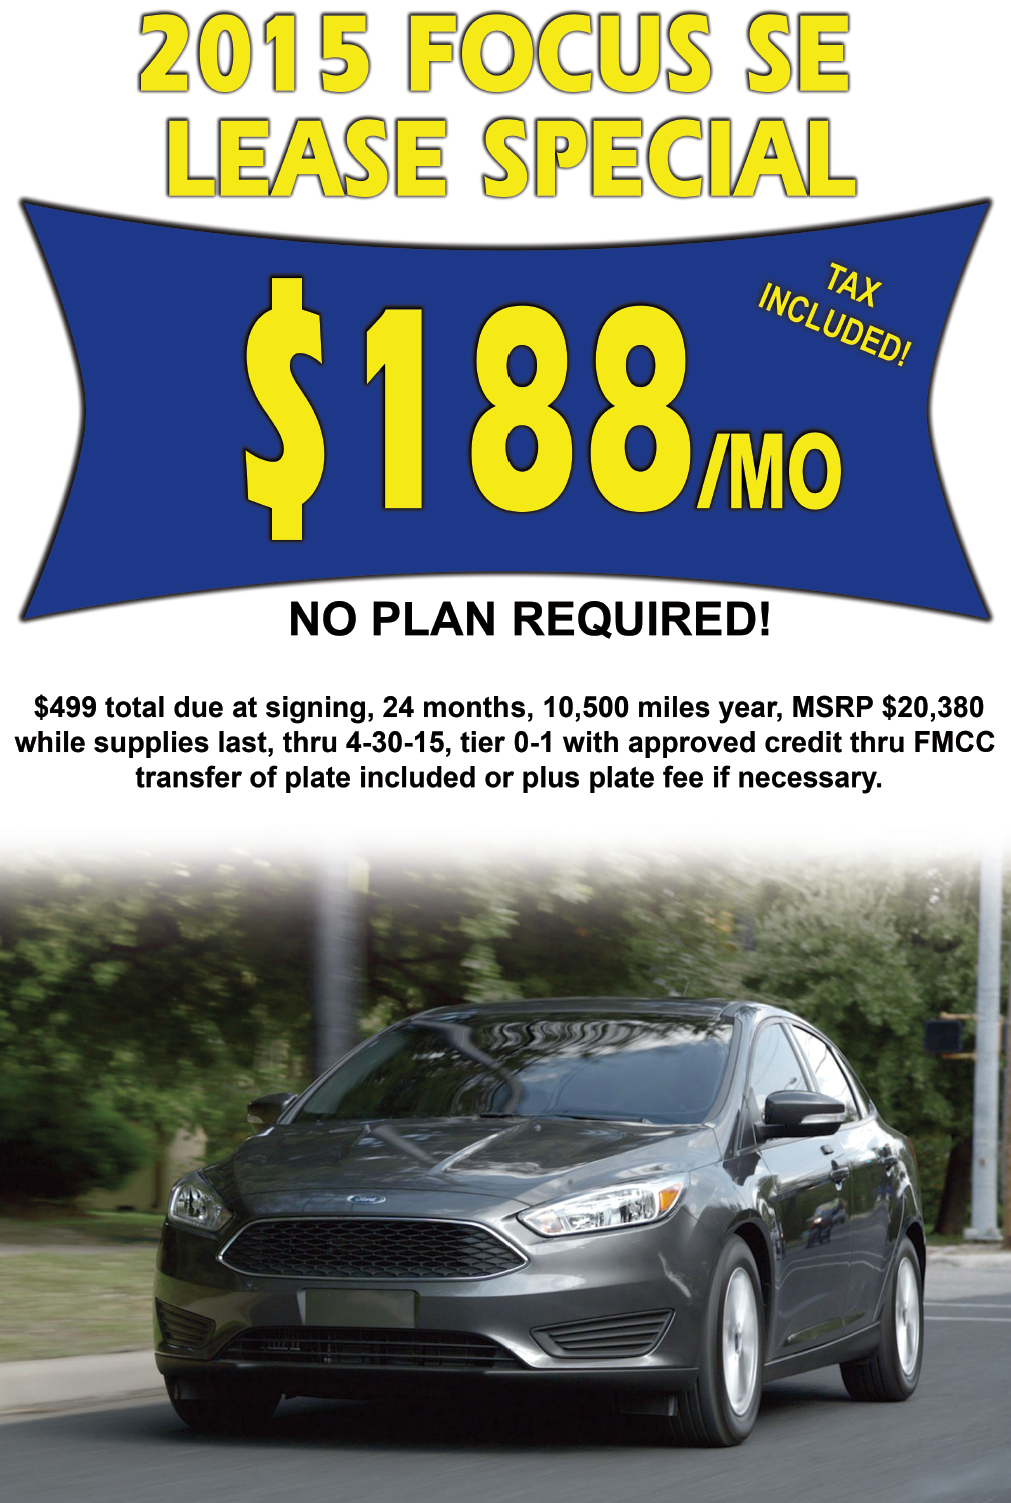 2015 Ford Focus Lease Deal at Lasco Ford April 2015